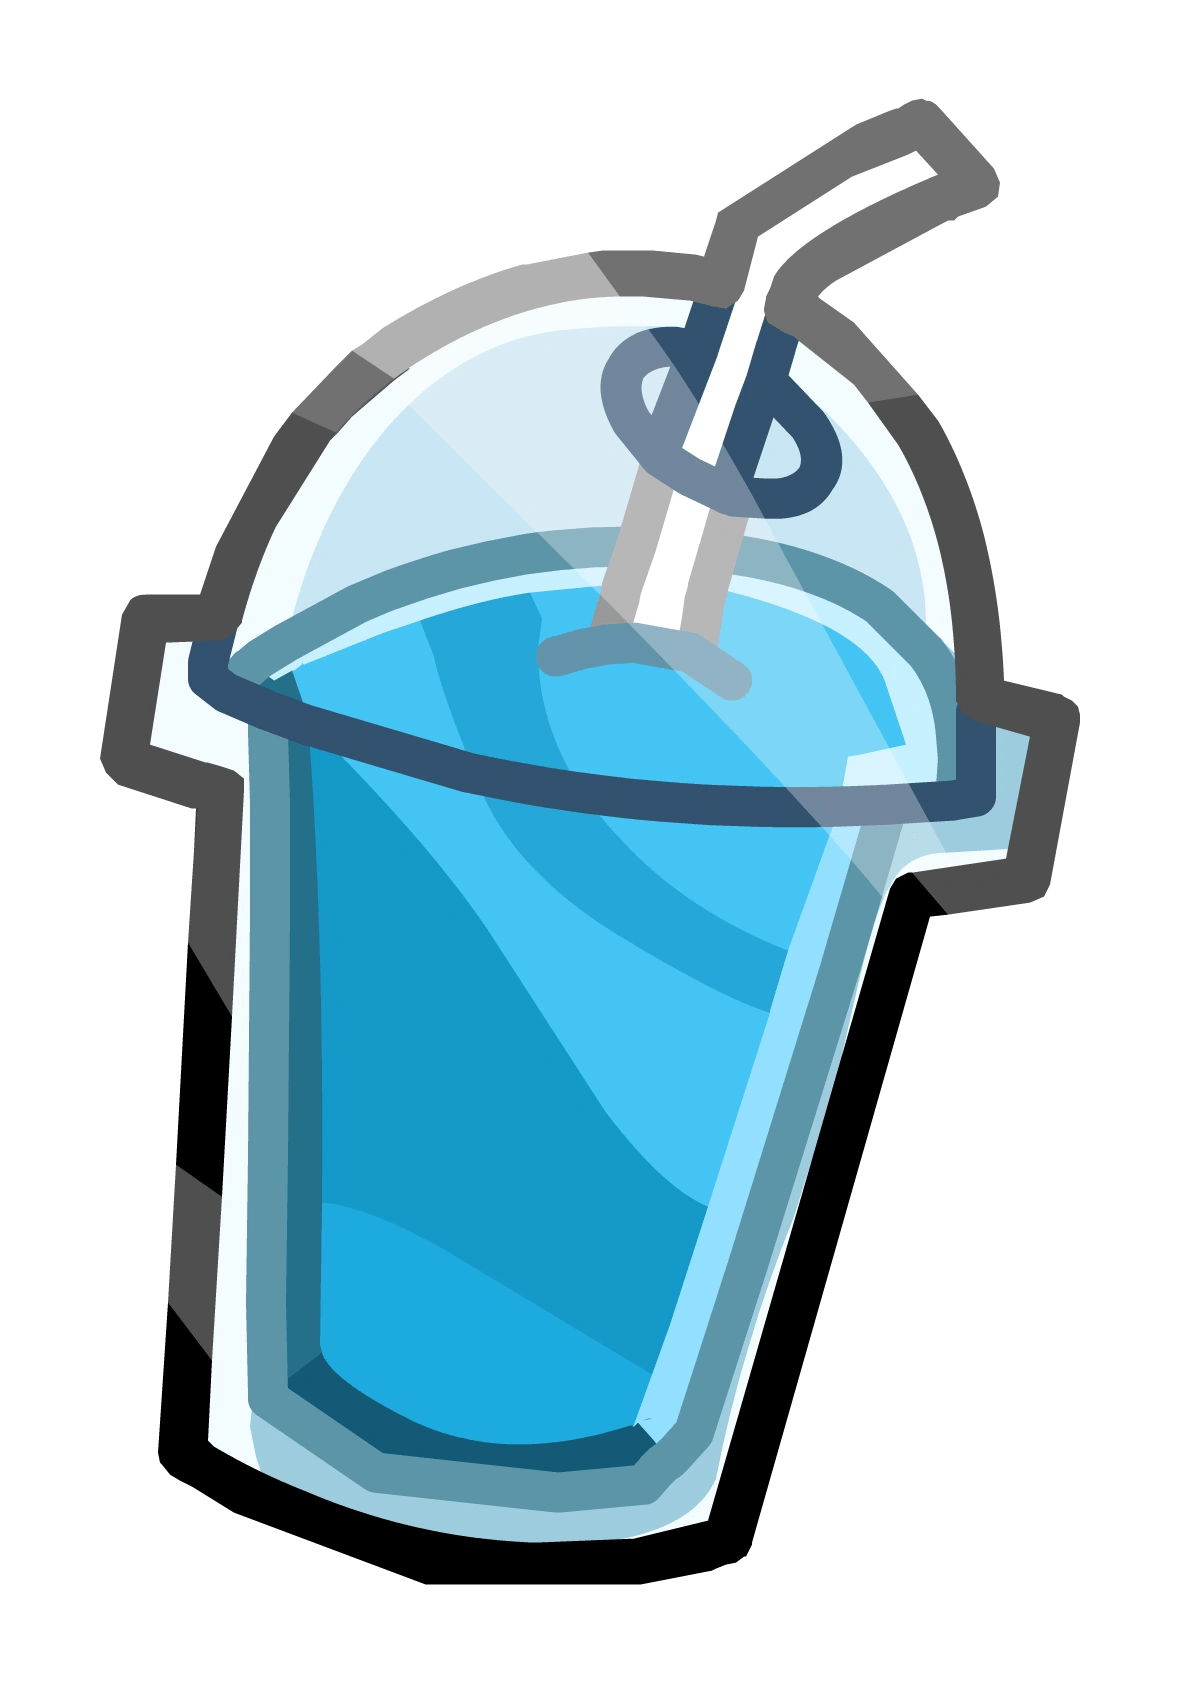 Snow And Ski Clothing Fruit Smoothie Pin | Club Penguin Wiki | Fandom Powered By